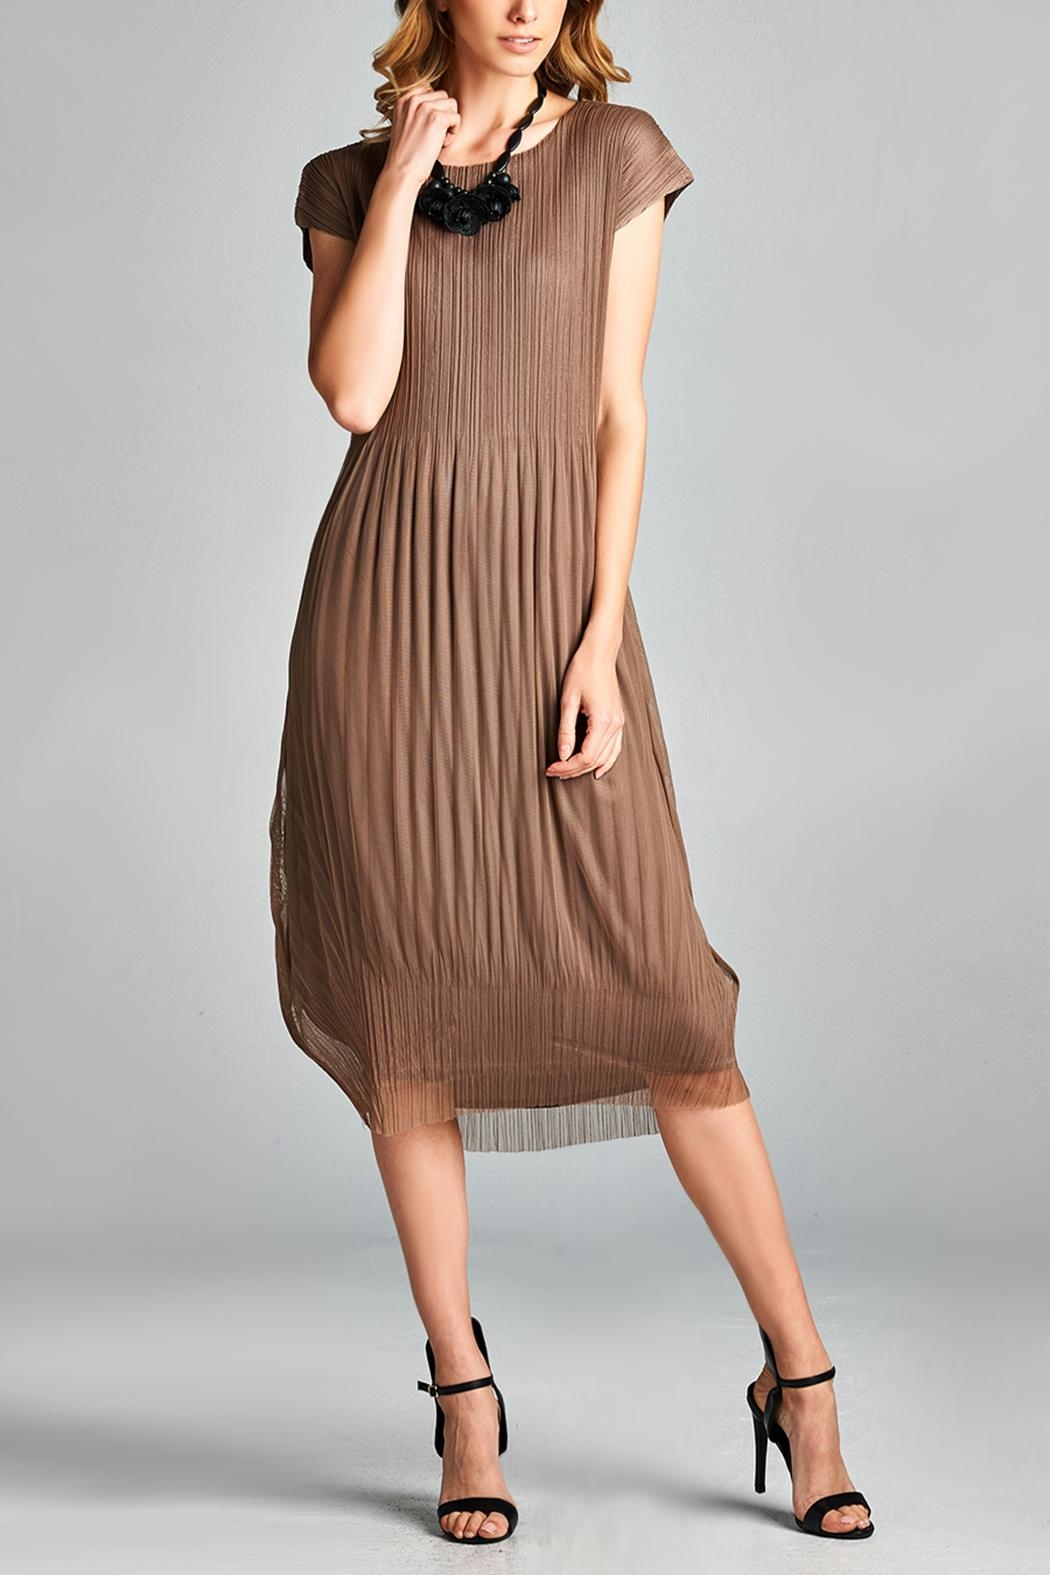 Nabisplace Cf Pleated Dress - Front Full Image